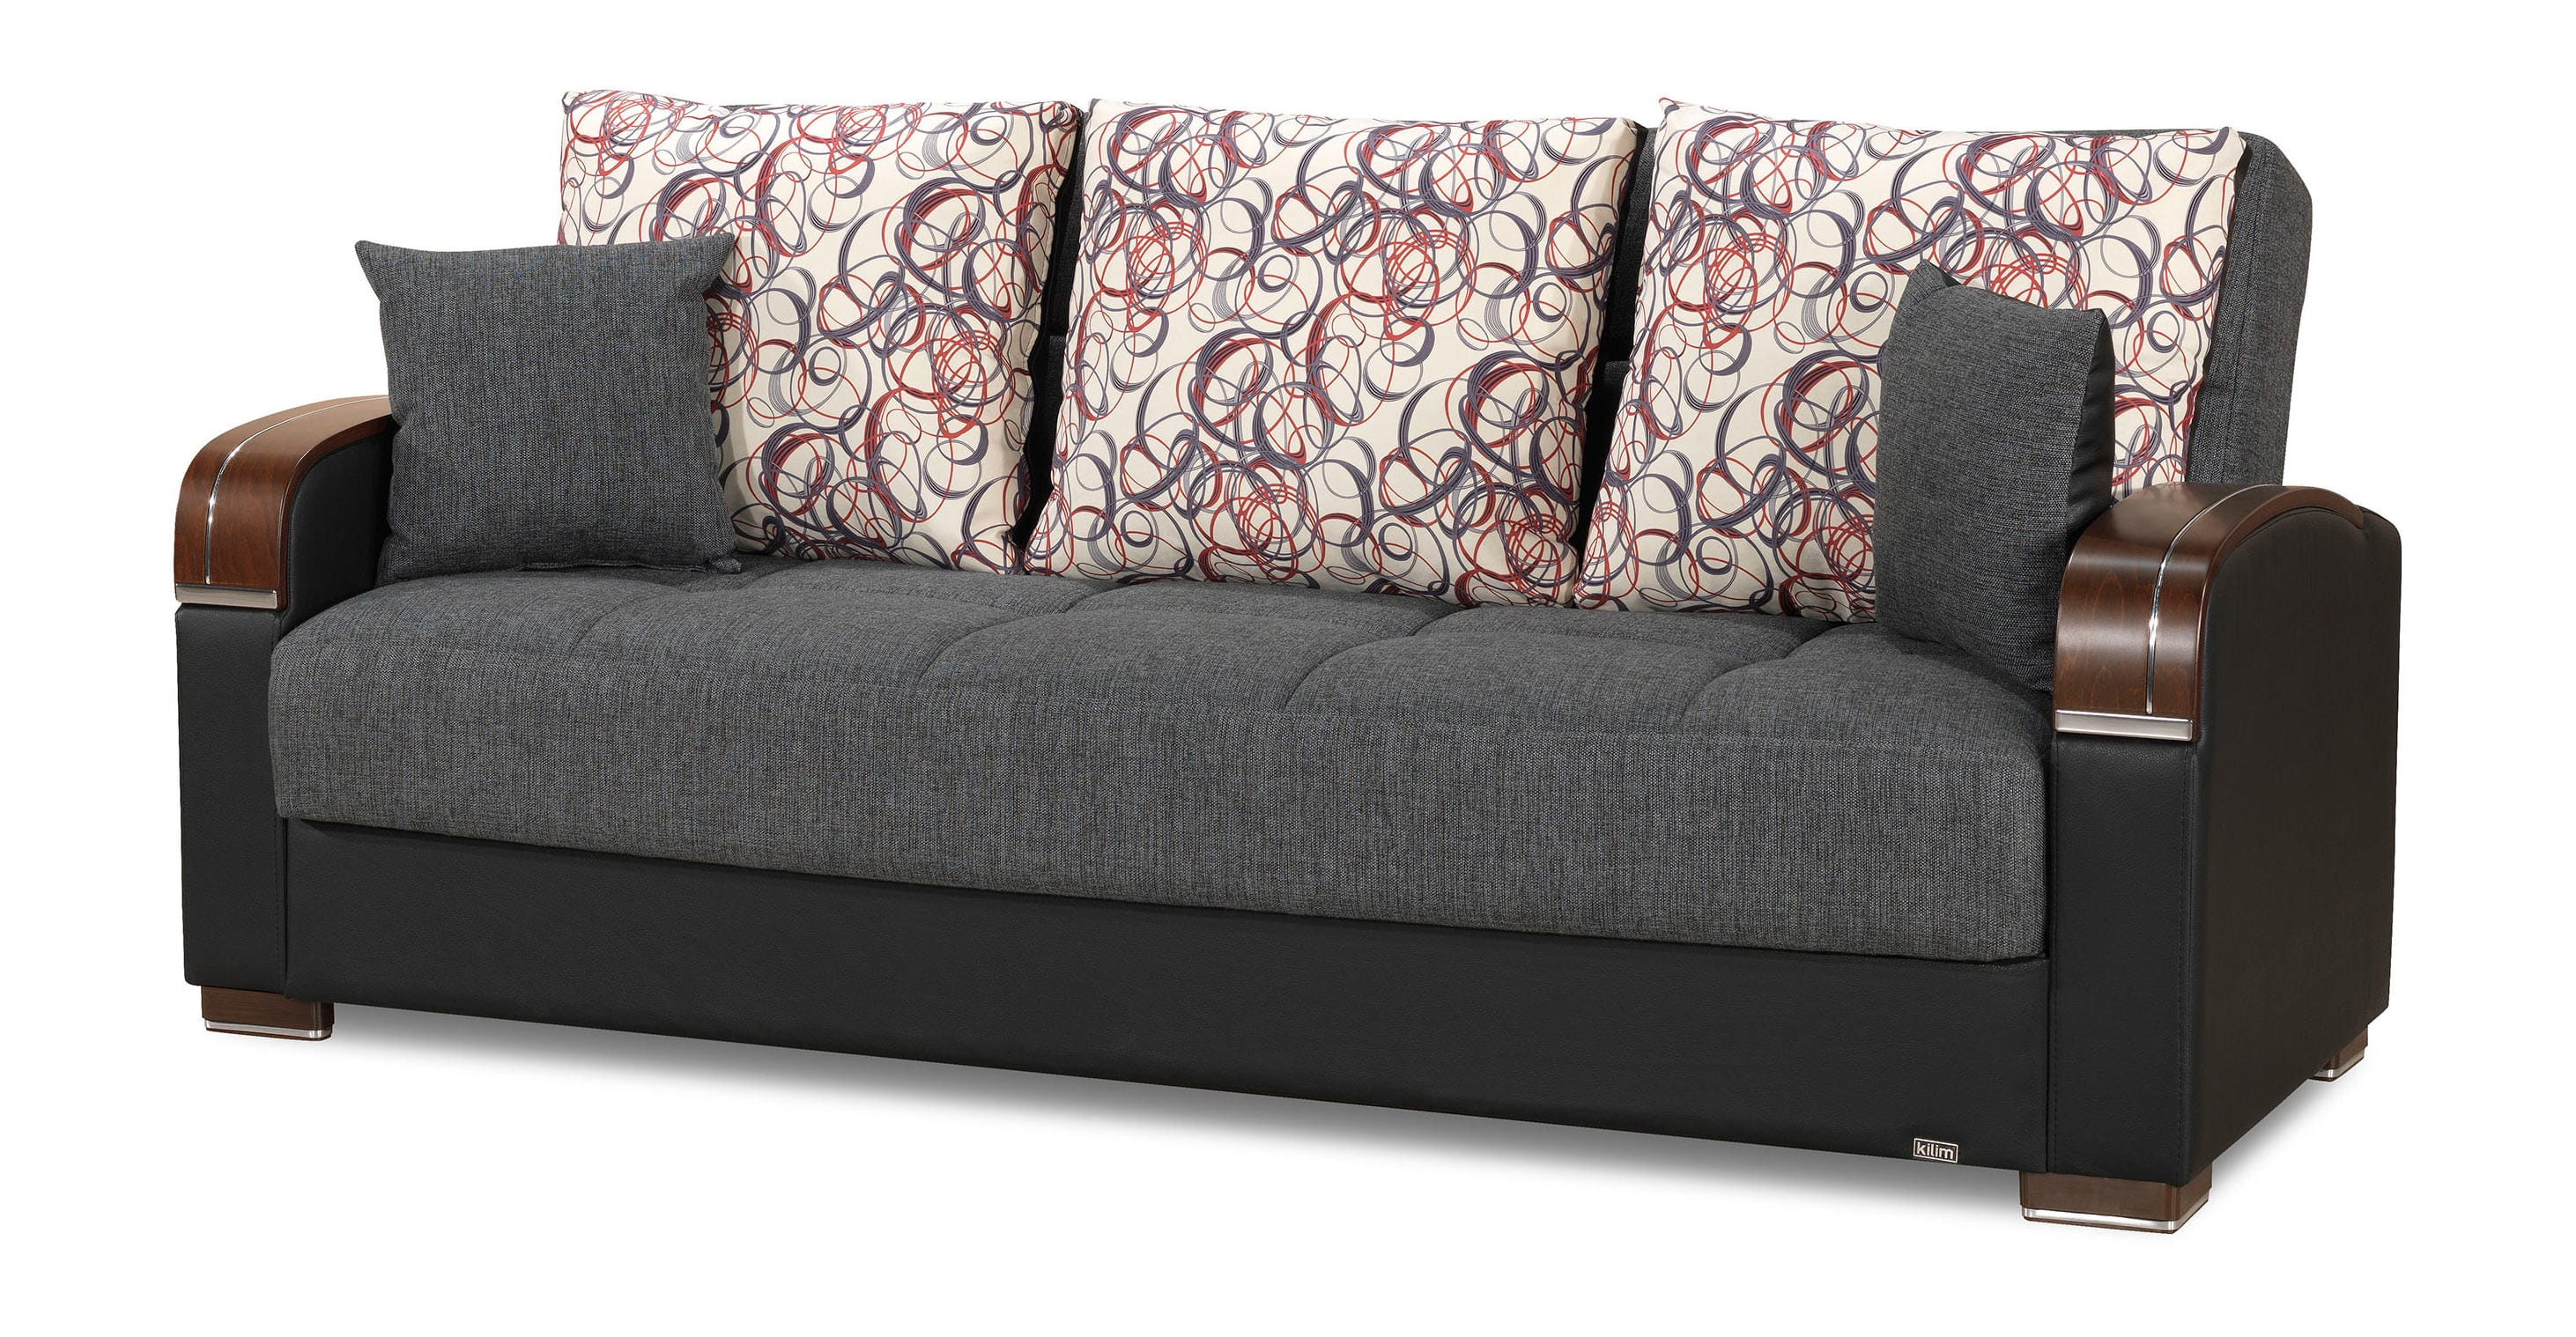 Mobimax grey convertible sofa bed by casamode for Sofas convertibles